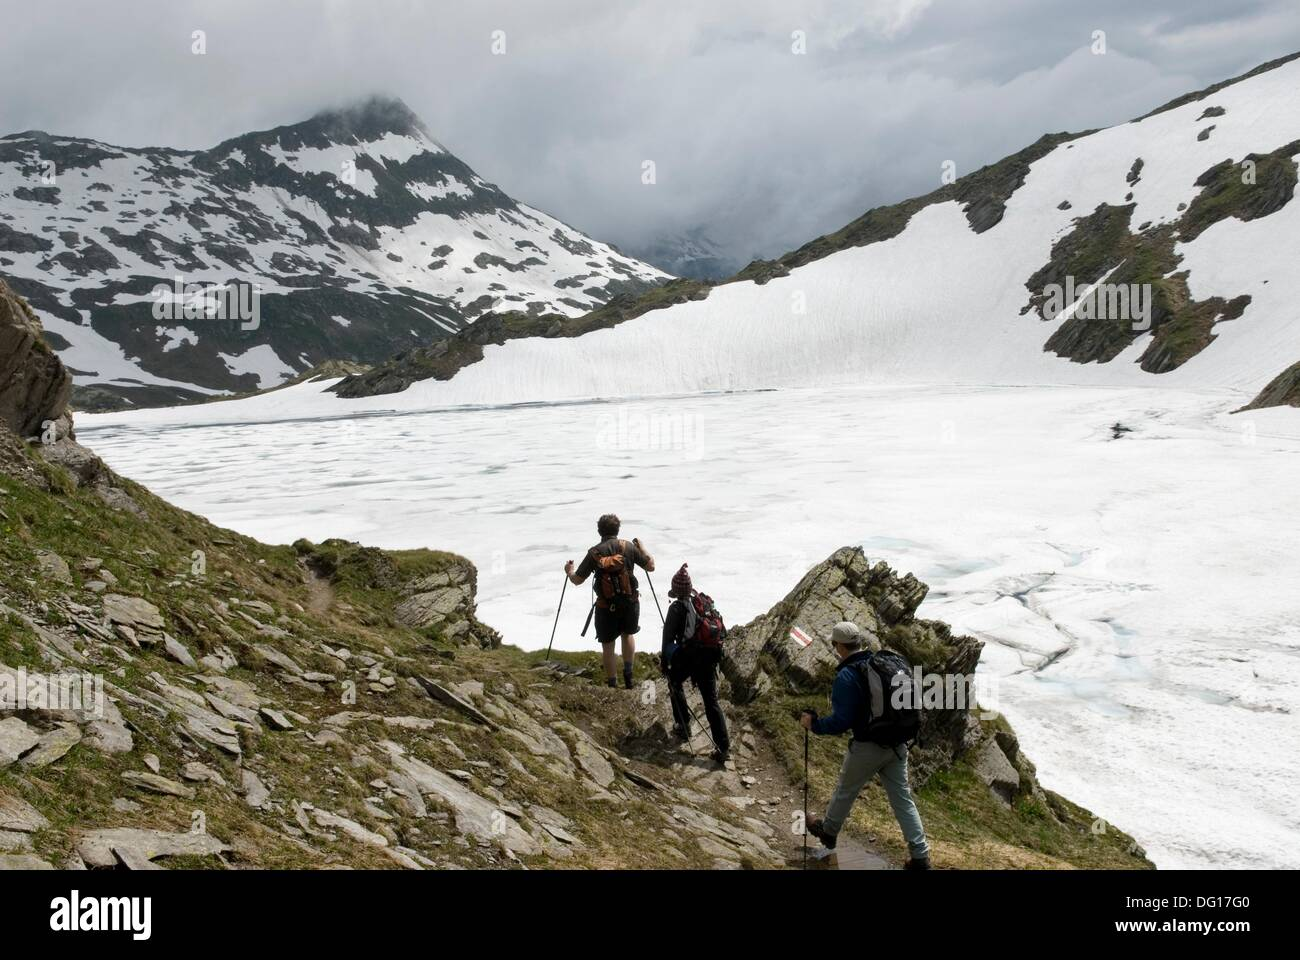 trekkers by the Scuro lake, Val Piora, Canton Ticino, Switzerland, Europe - Stock Image